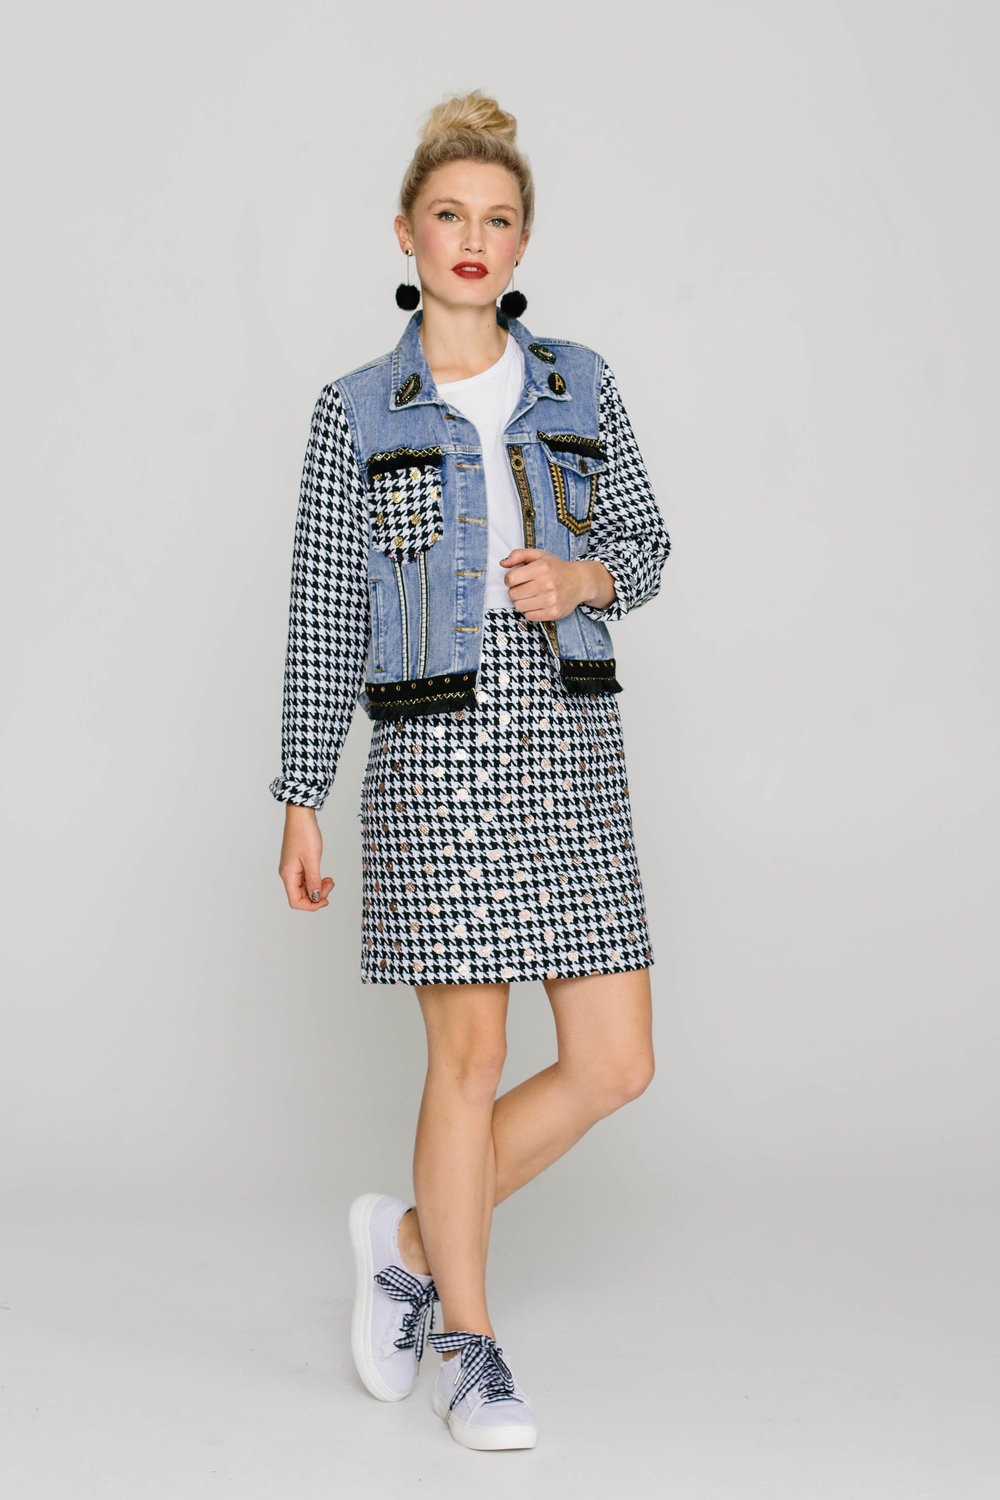 6199WB Denim Jacket 5740W Straight Skirt Chanel Silver